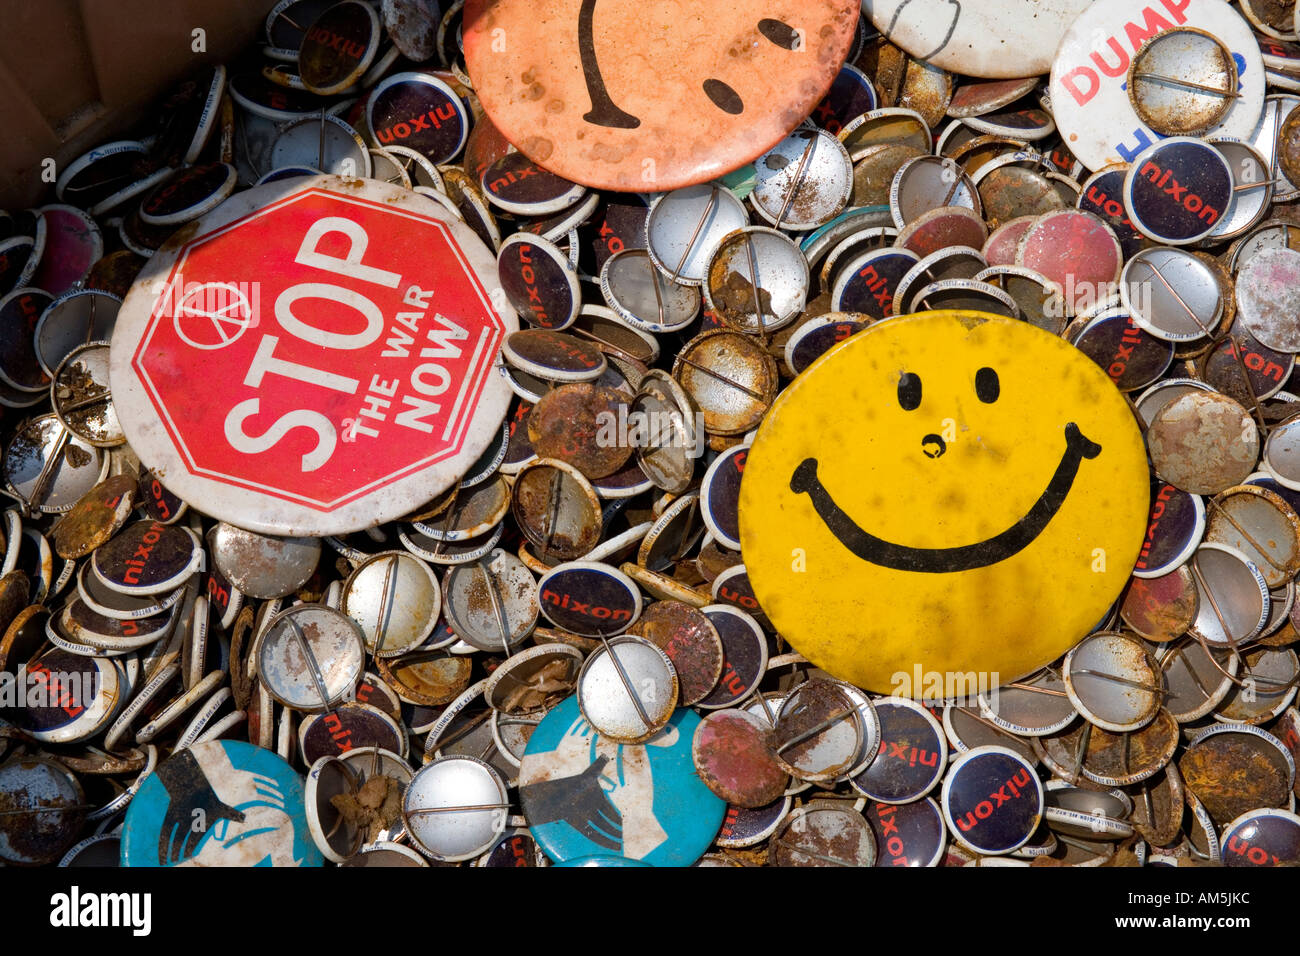 Lost hopes; lost ideals. Hundreds of rusty political and campaign buttons. Stop the war now is the most prominent slogan. - Stock Image